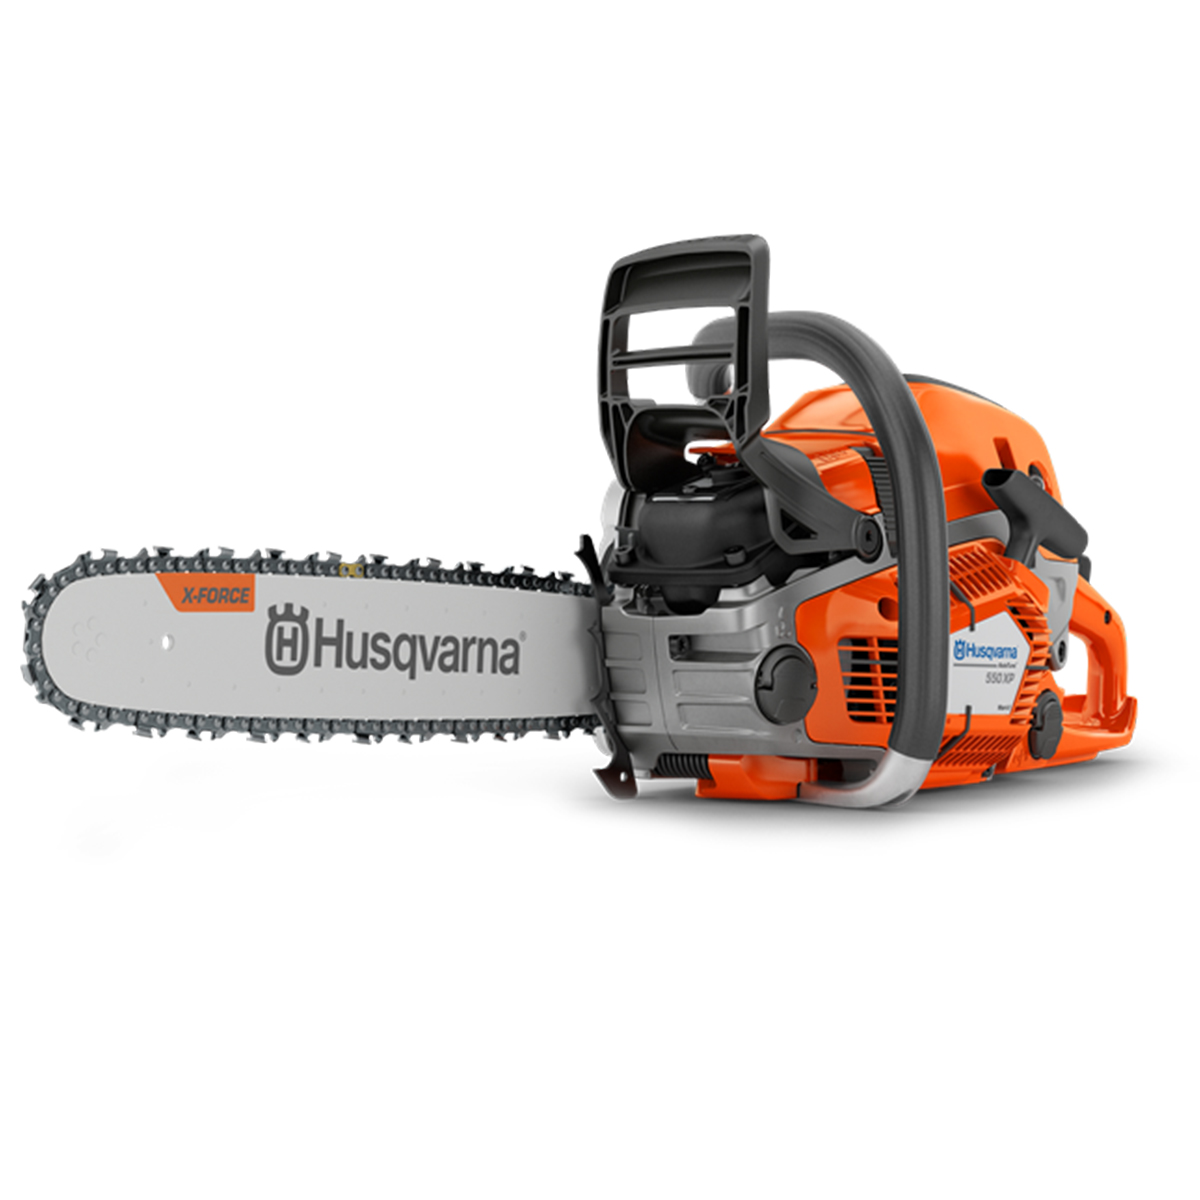 HUSQVARNA 550 XP® Mark II AUTOTUNE 18